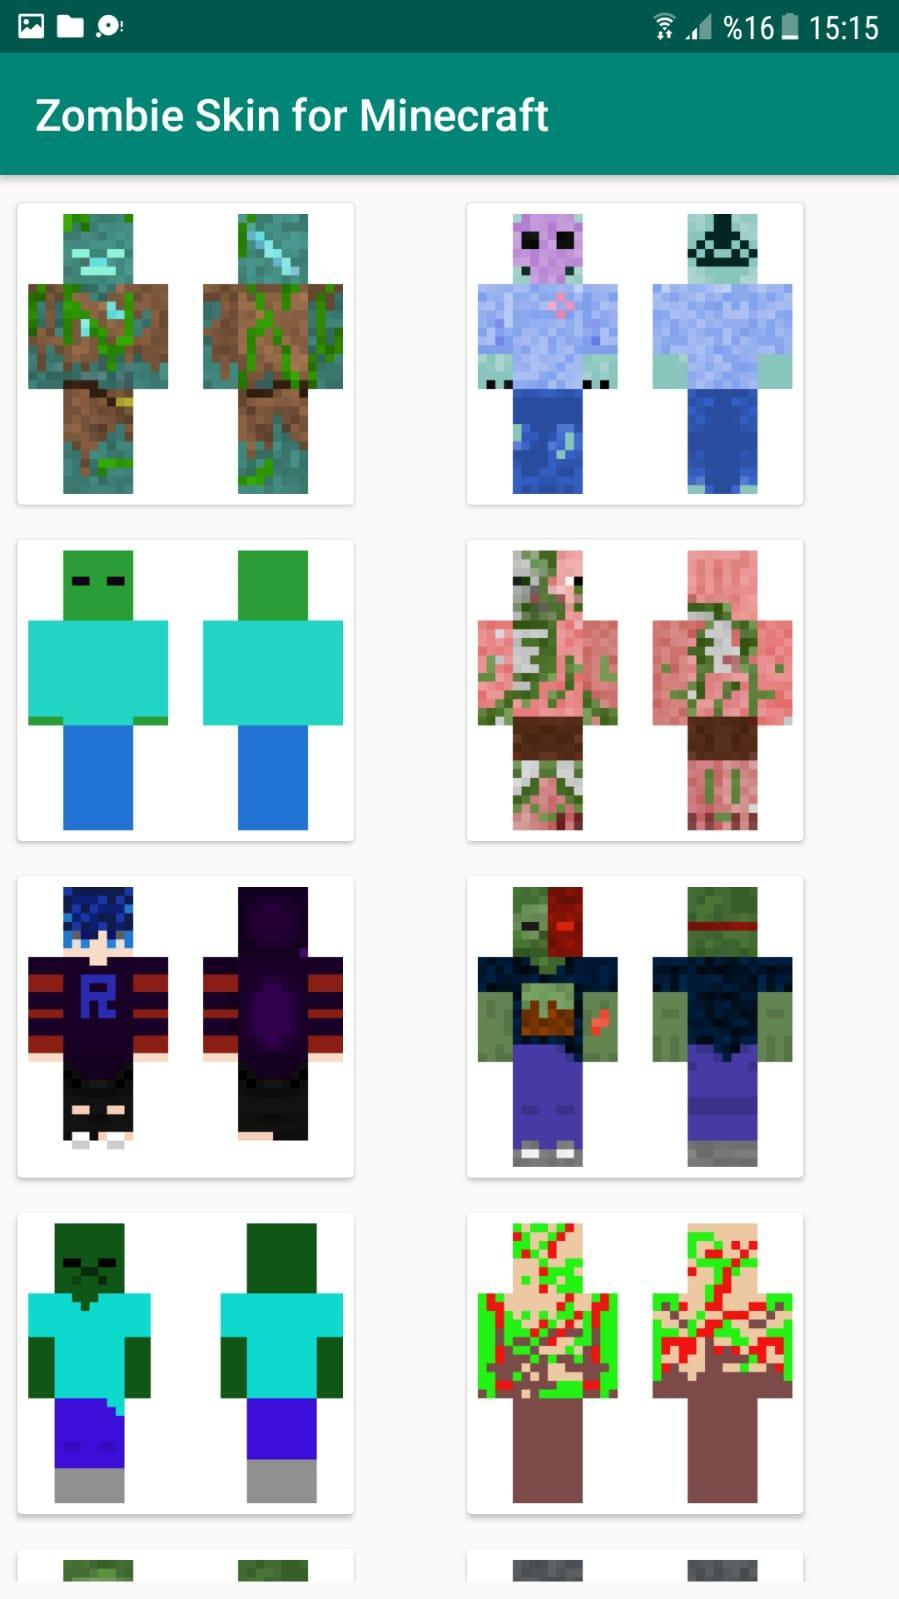 Zombie Skin for Minecraft for Android - APK Download